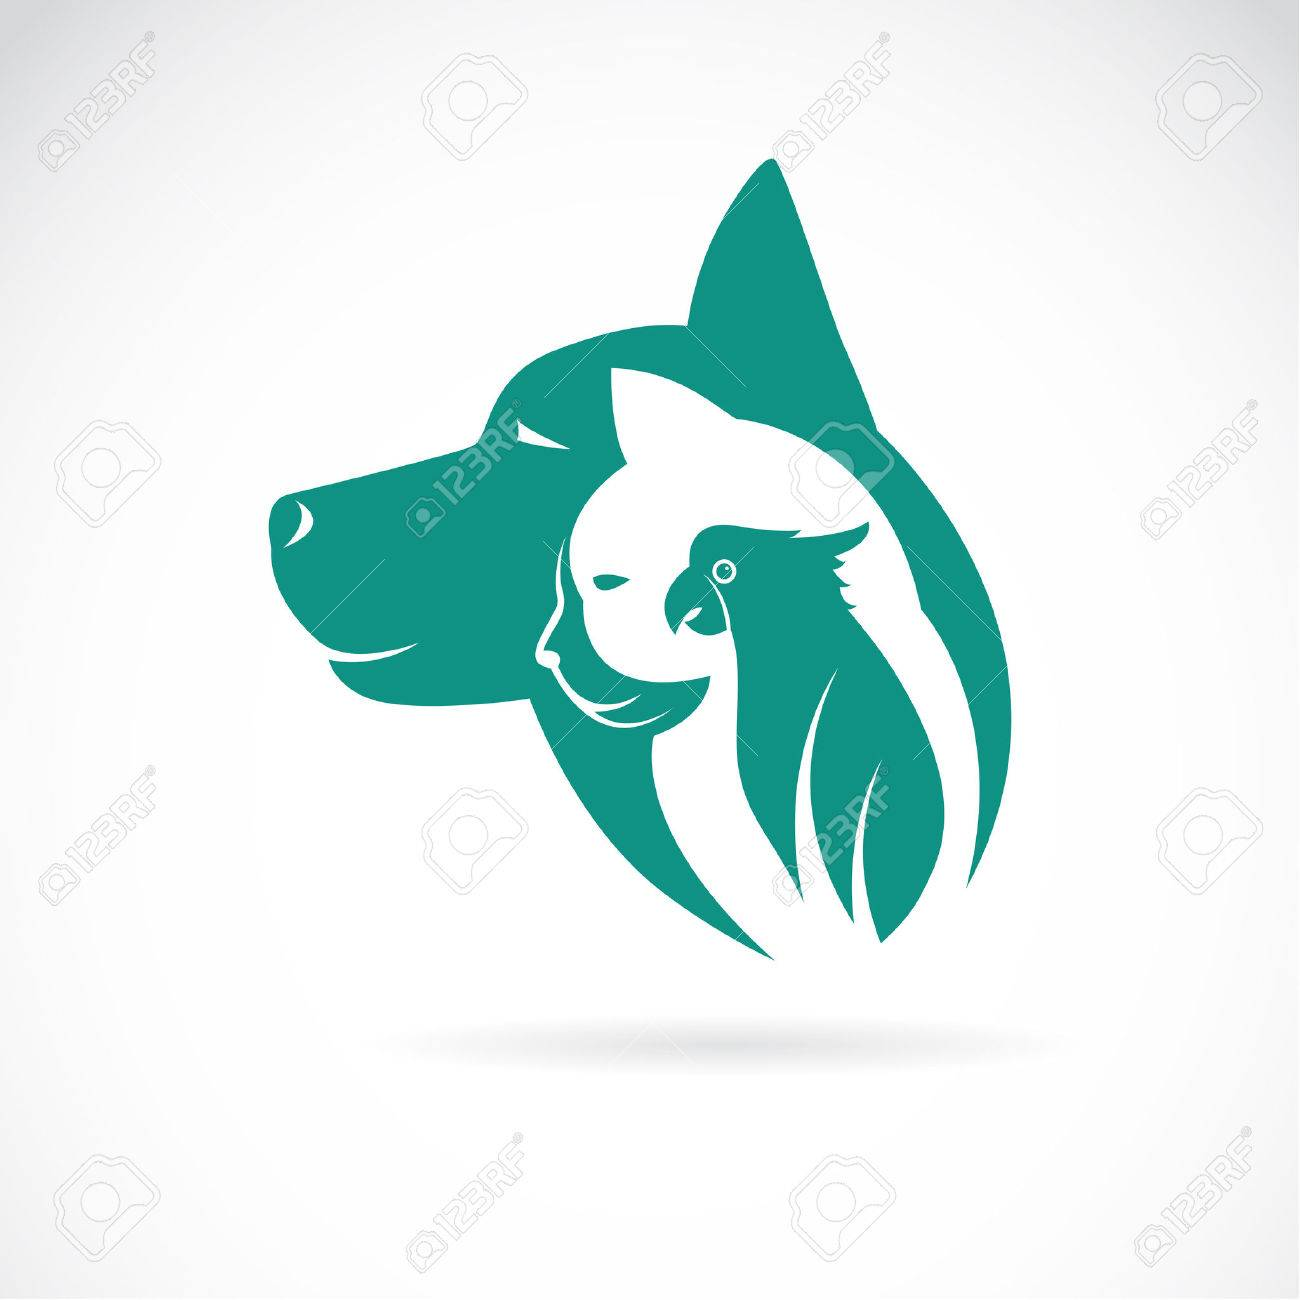 Animal Design Vector Image Of An Dog Cat And Bird On White Background Animal